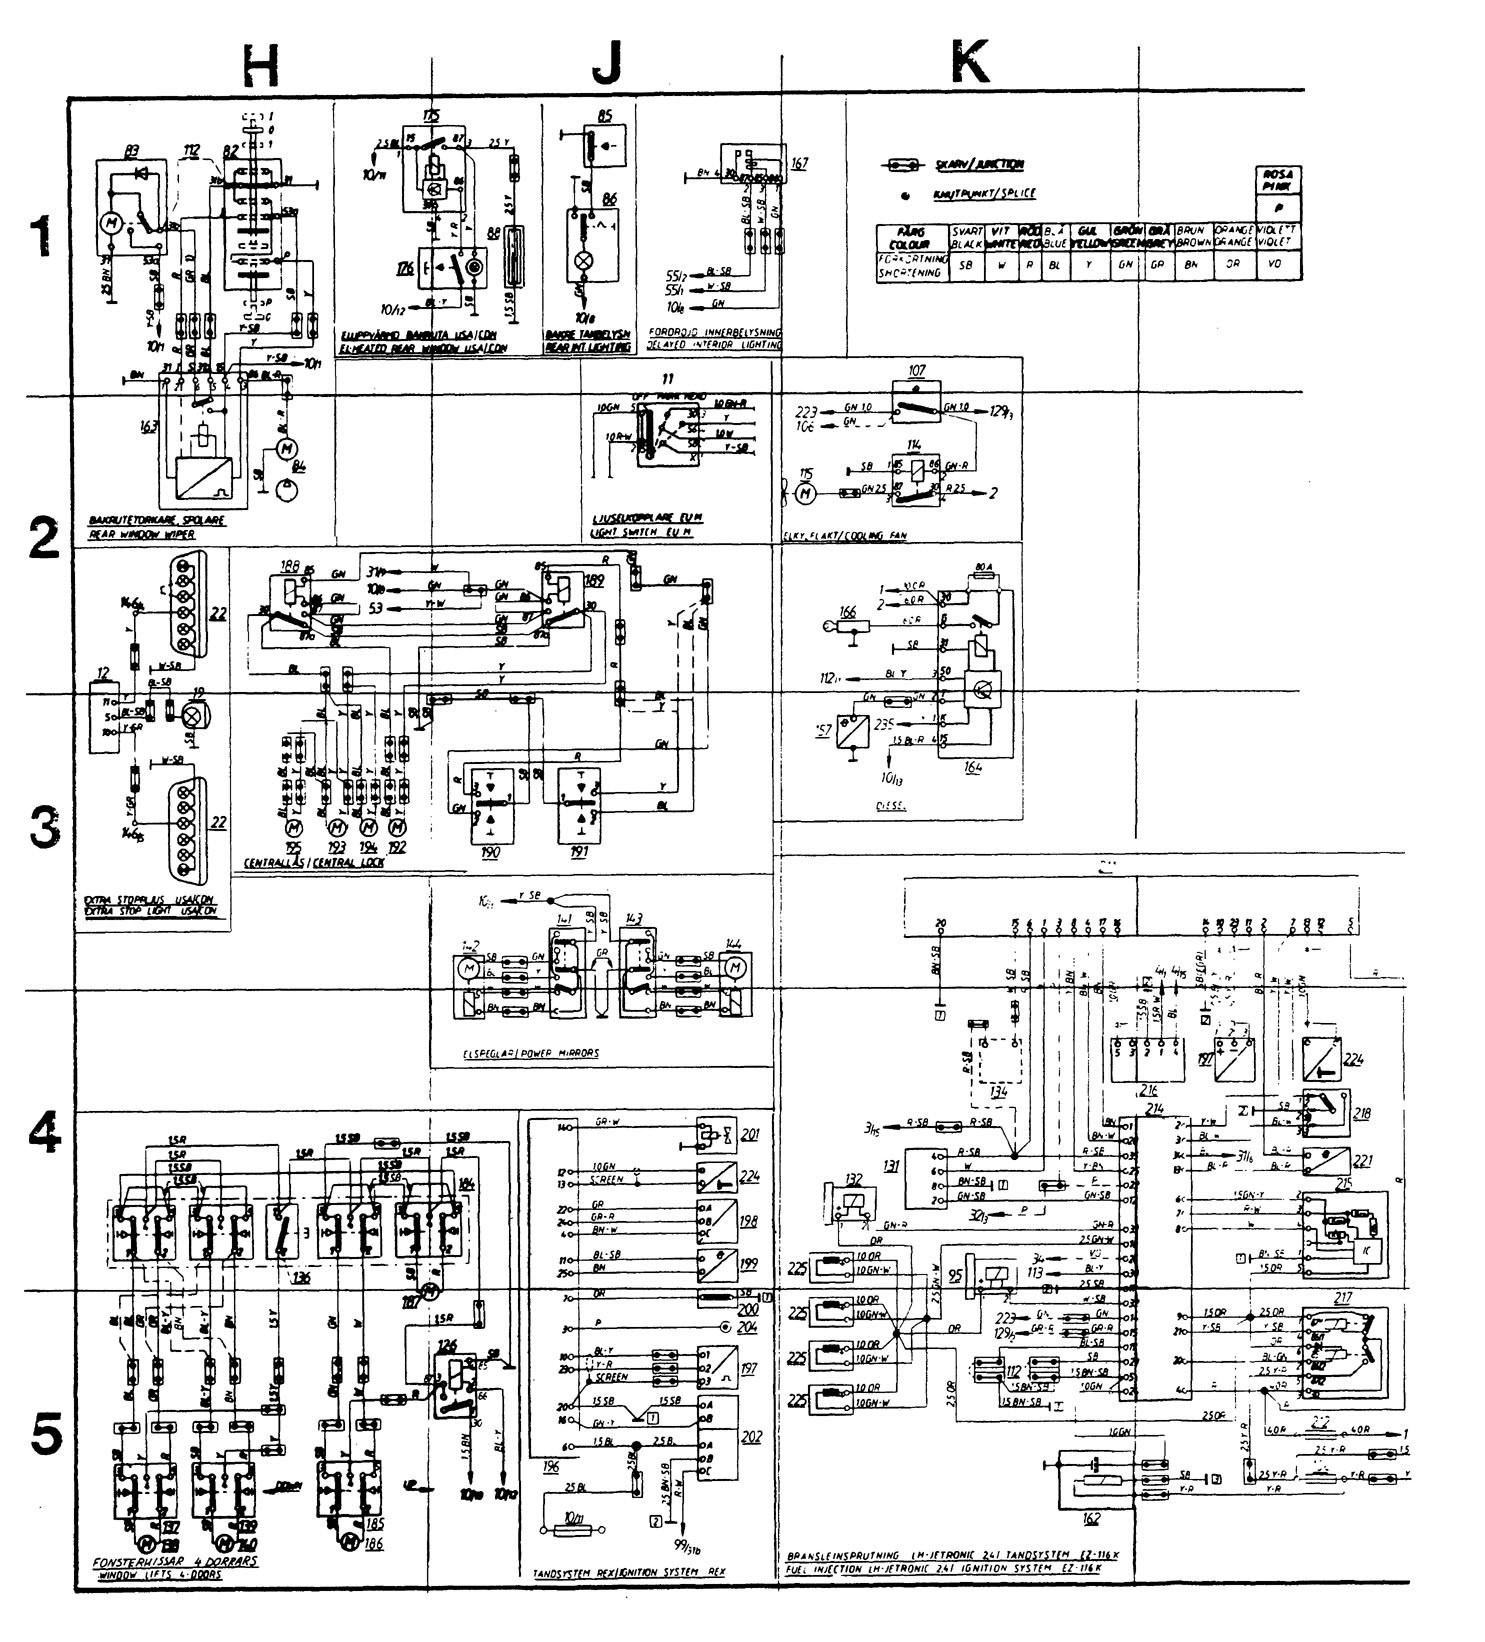 Bmw 02 Wiring Diagram Auto Electrical V12 Engine Related With